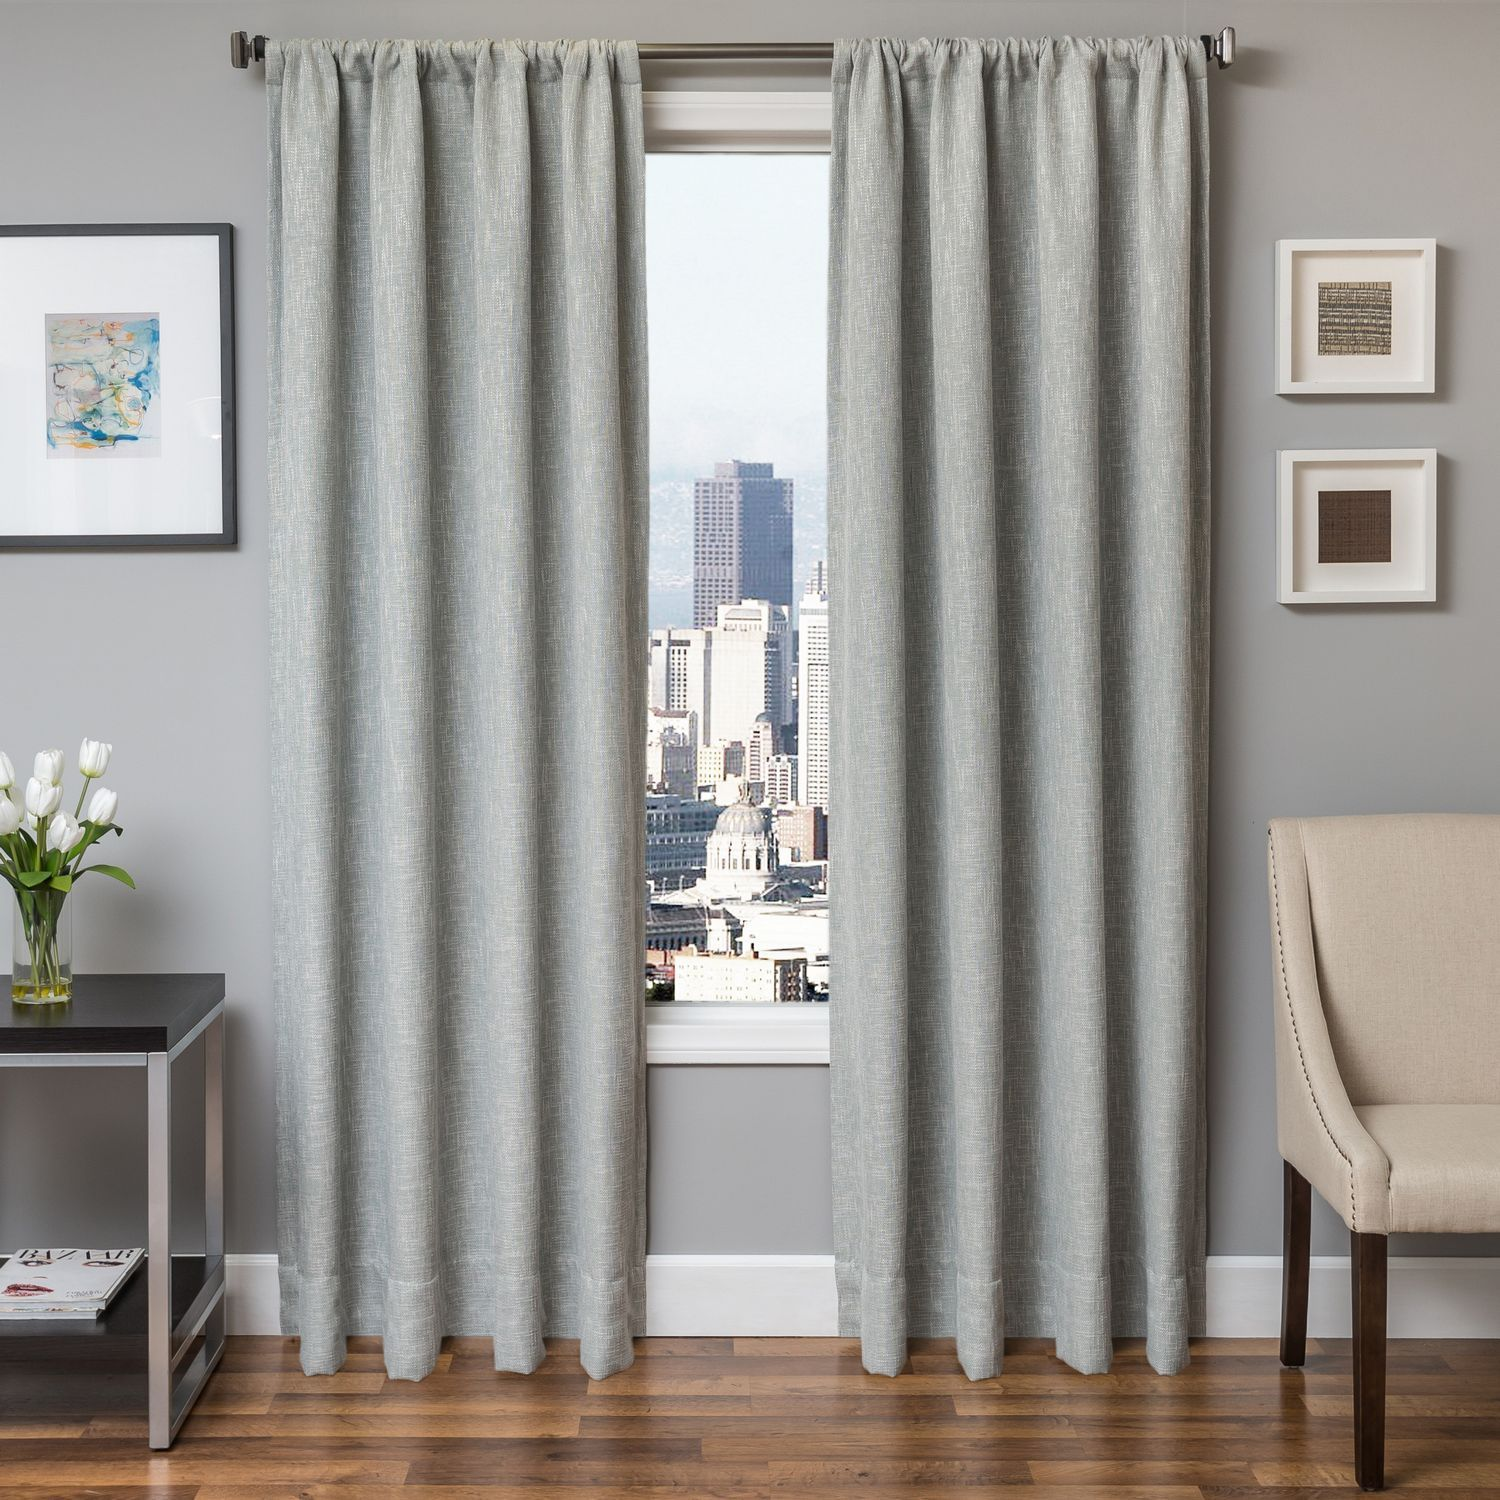 Softline Home Fashions Drapery Breda Swatch Set Rod Pocket Curtains Panel Curtains Classic Curtains